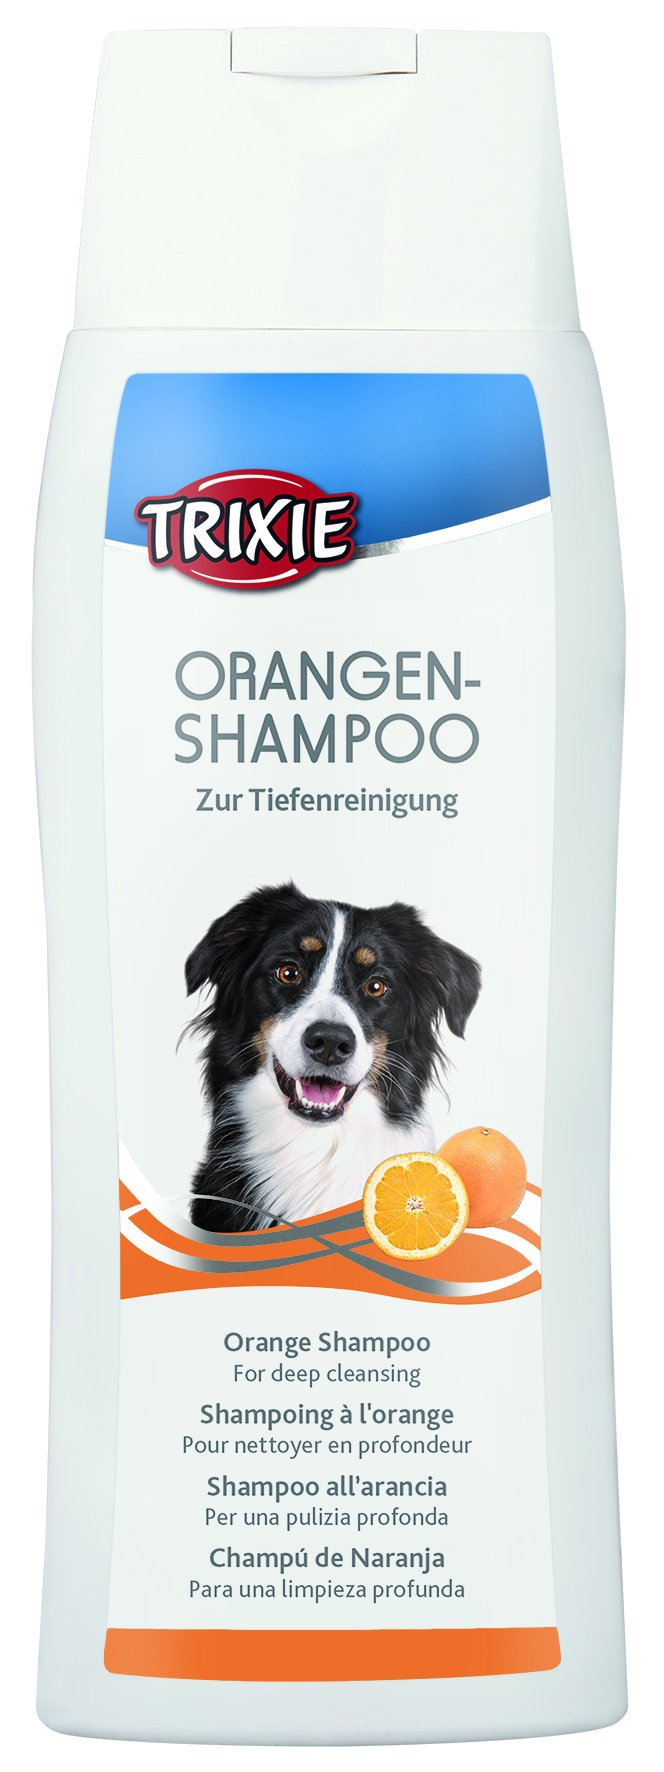 29194 Orange shampoo, 250 ml